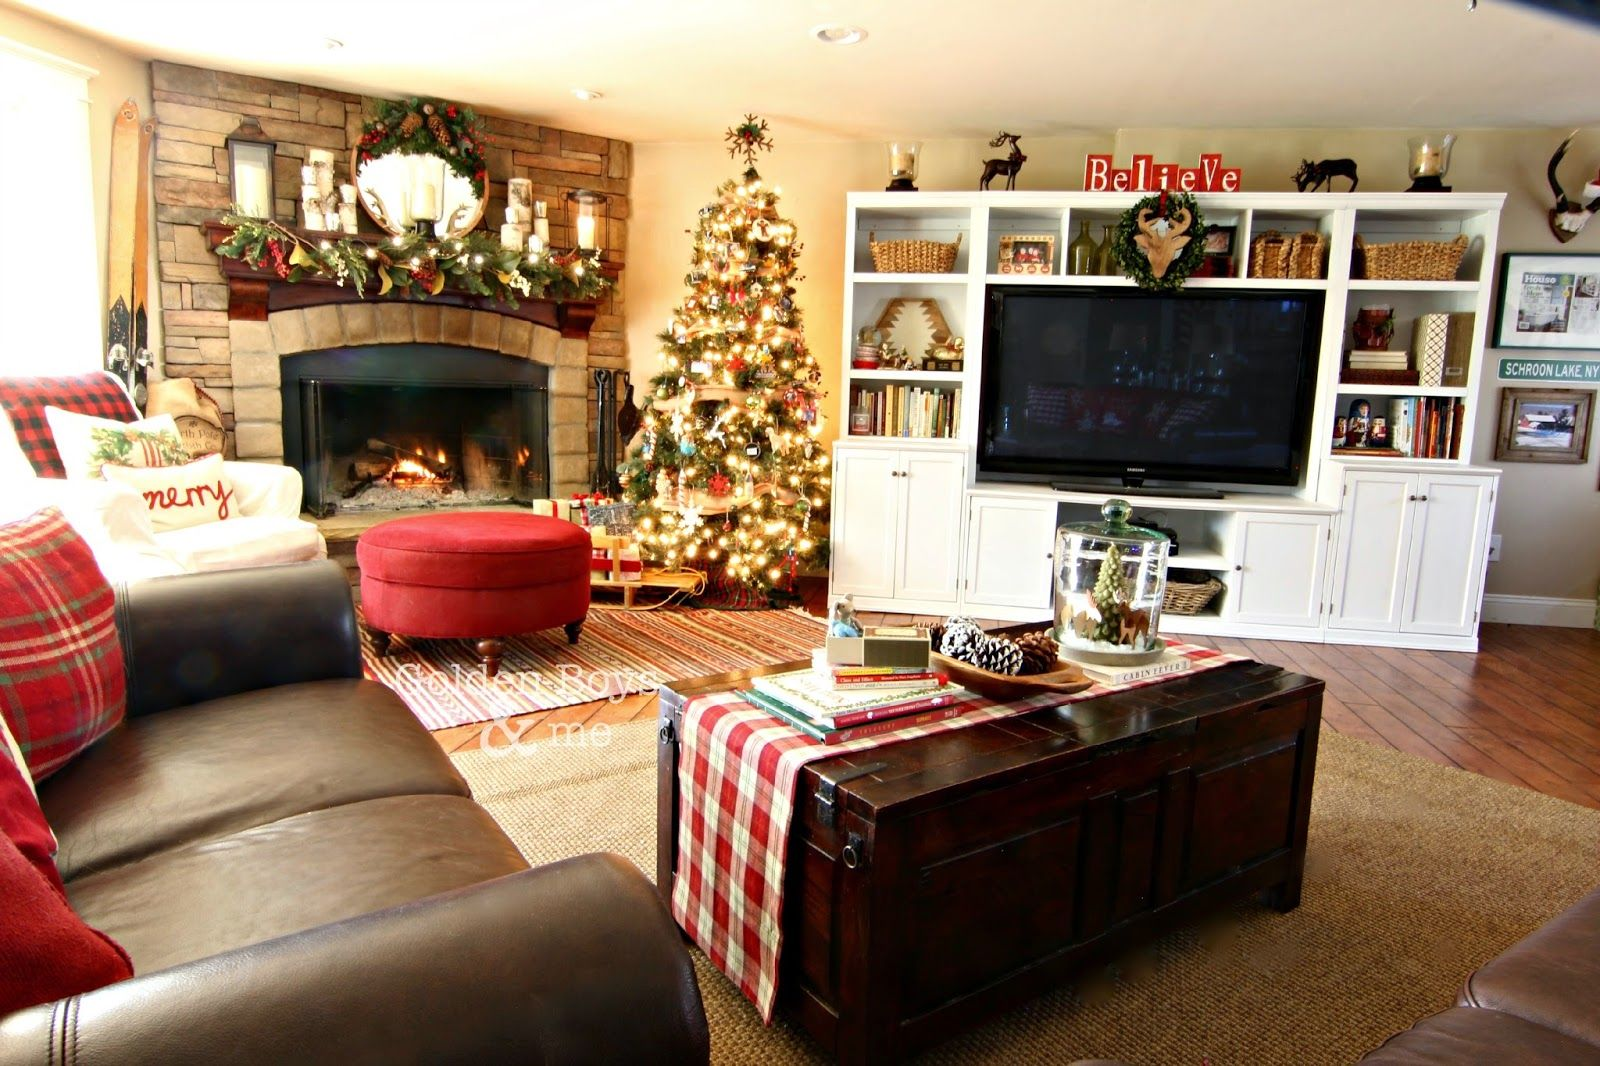 Holiday Home Tour 2014 Pottery Barn Style Family Room